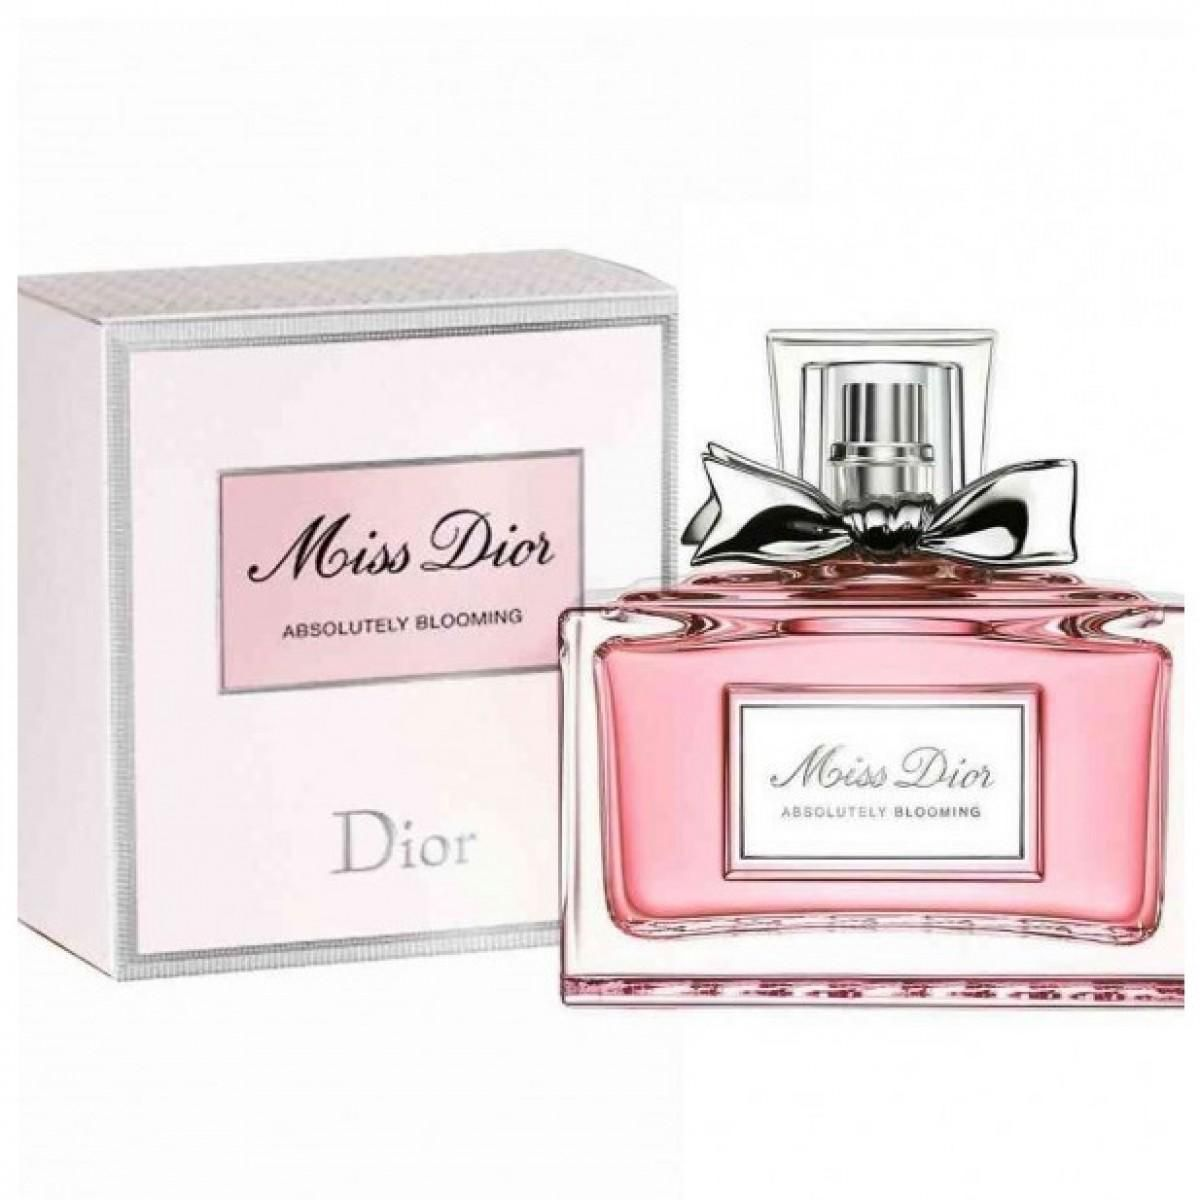 Dior - Miss Dior Absolutely Blooming. W-100